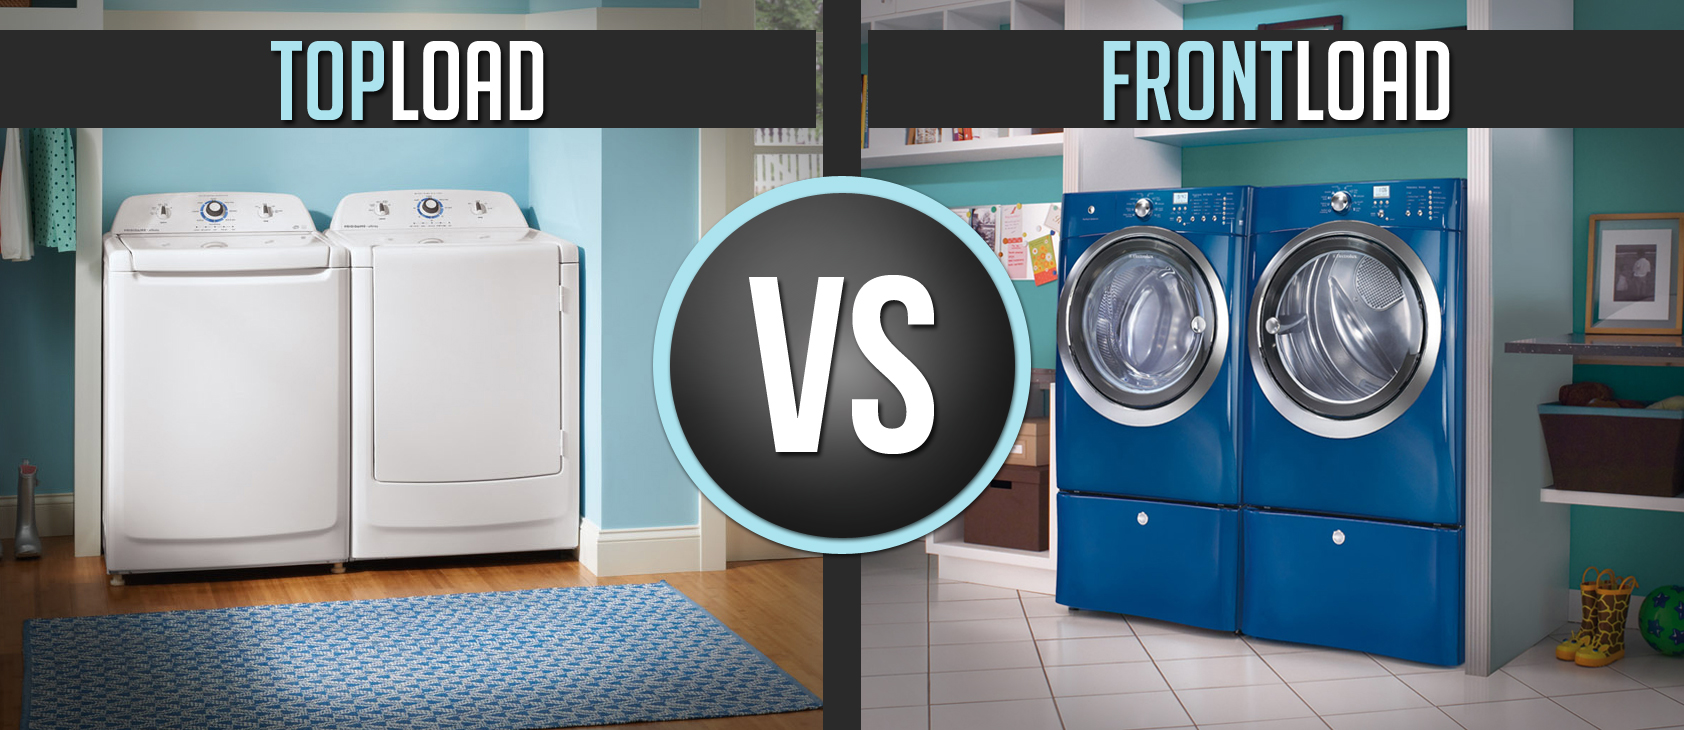 The best top load washer and dryer combo 2015 - Appliance Repair Washer Buying Guide